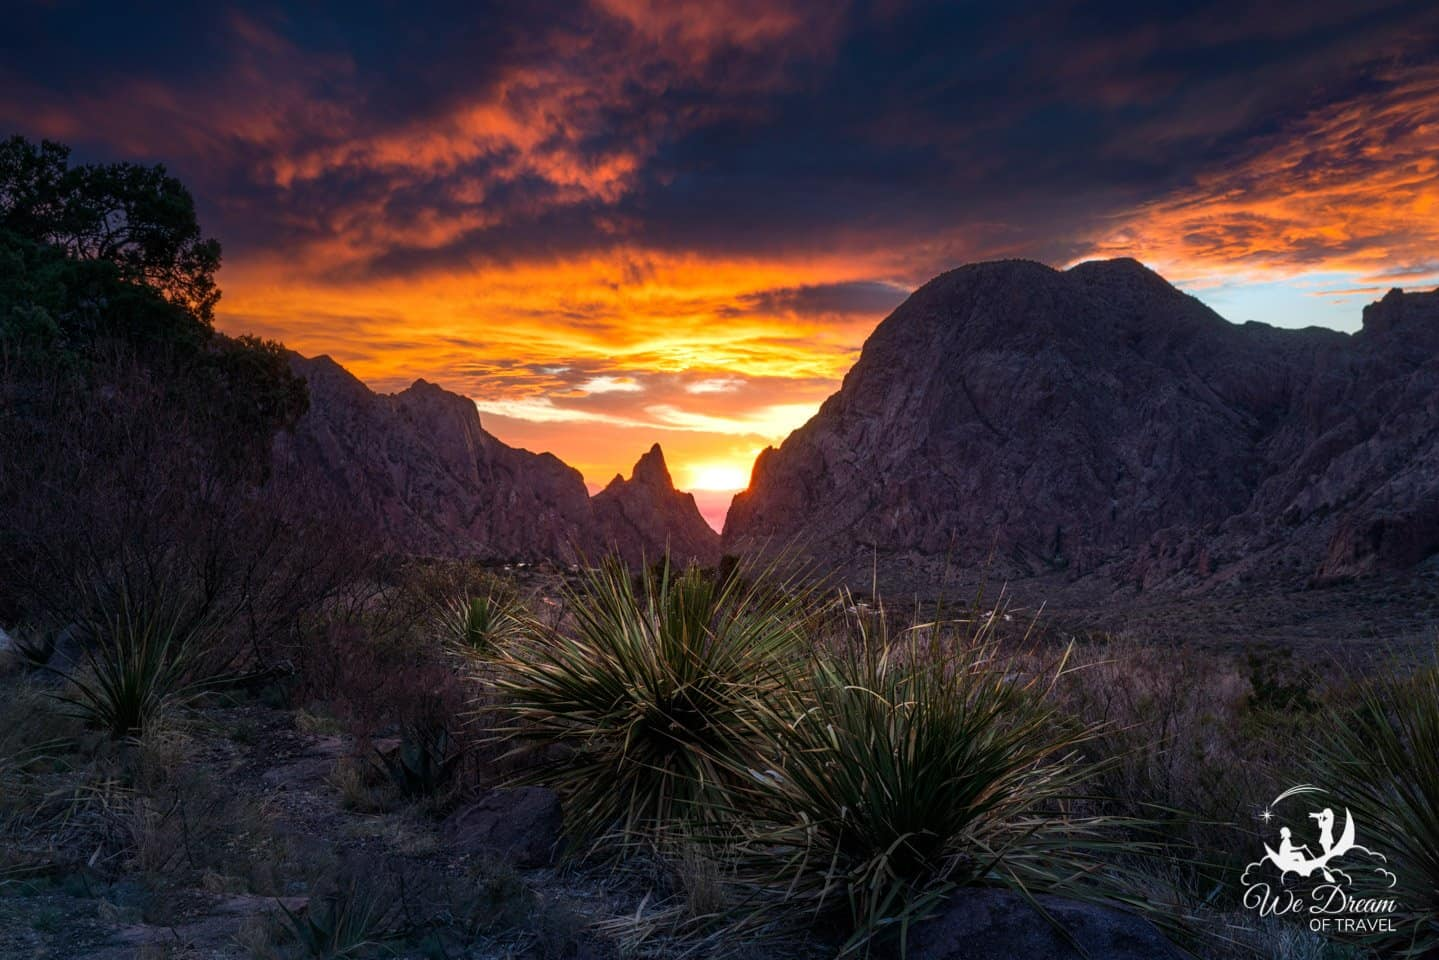 A crazy sunset picture looking at The Window in Big Bend National Park.